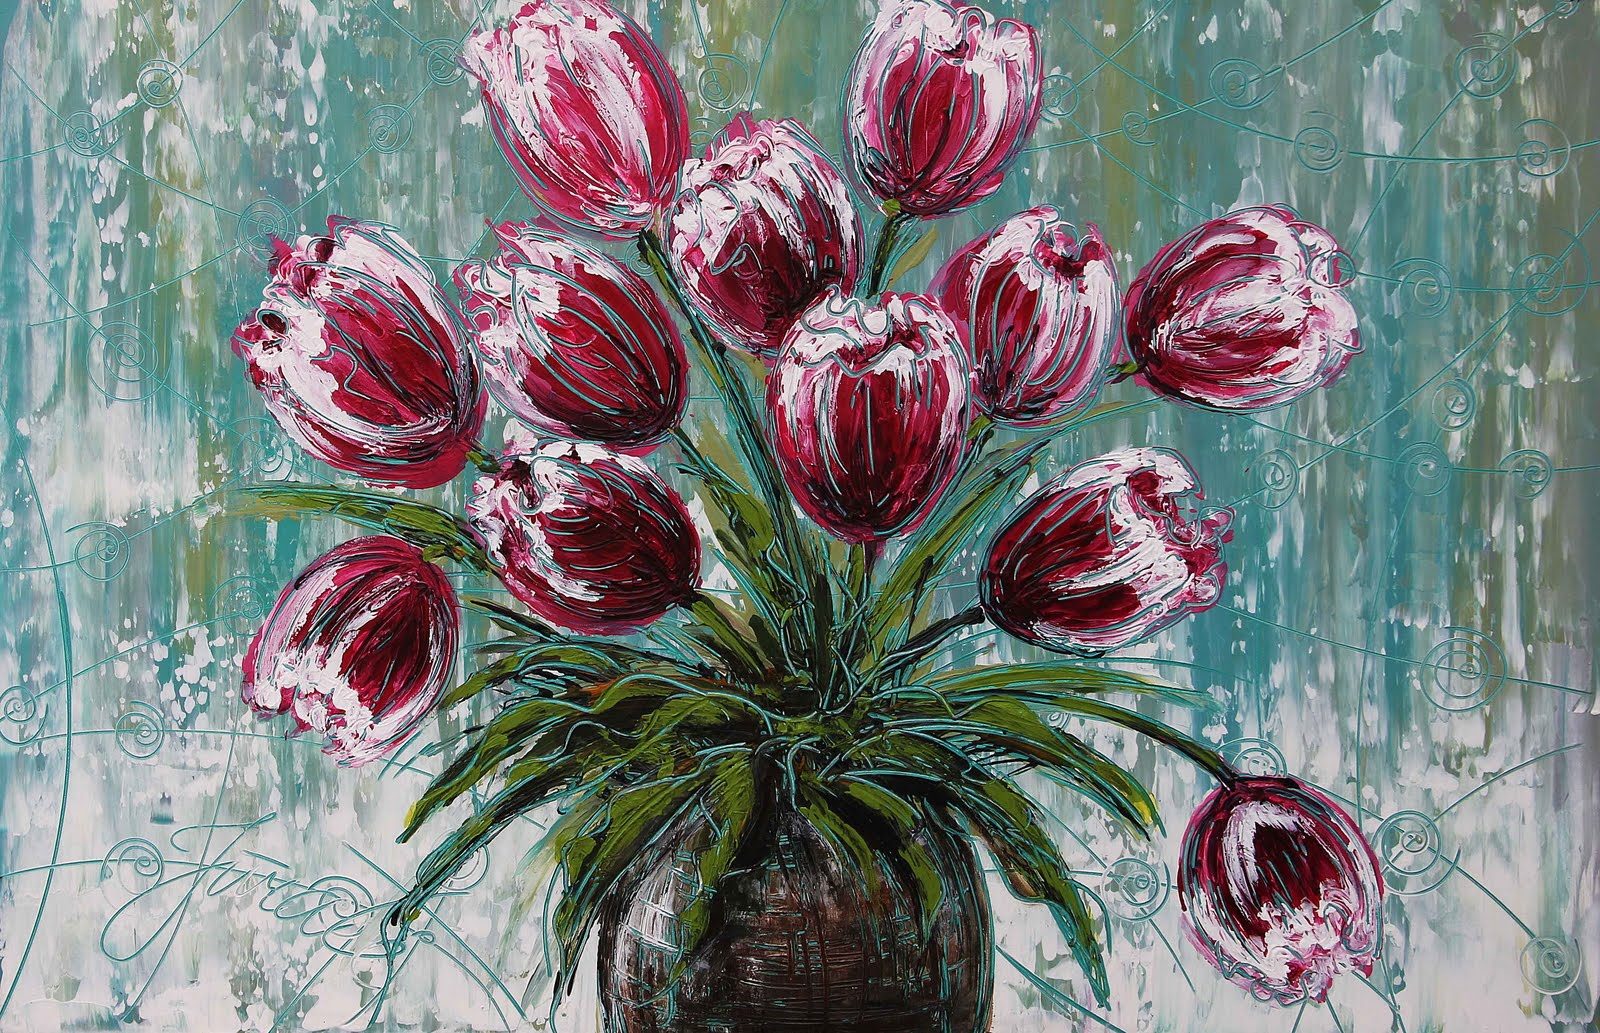 Palette Painted Abstract Paintings Of Flowers Wallpaper